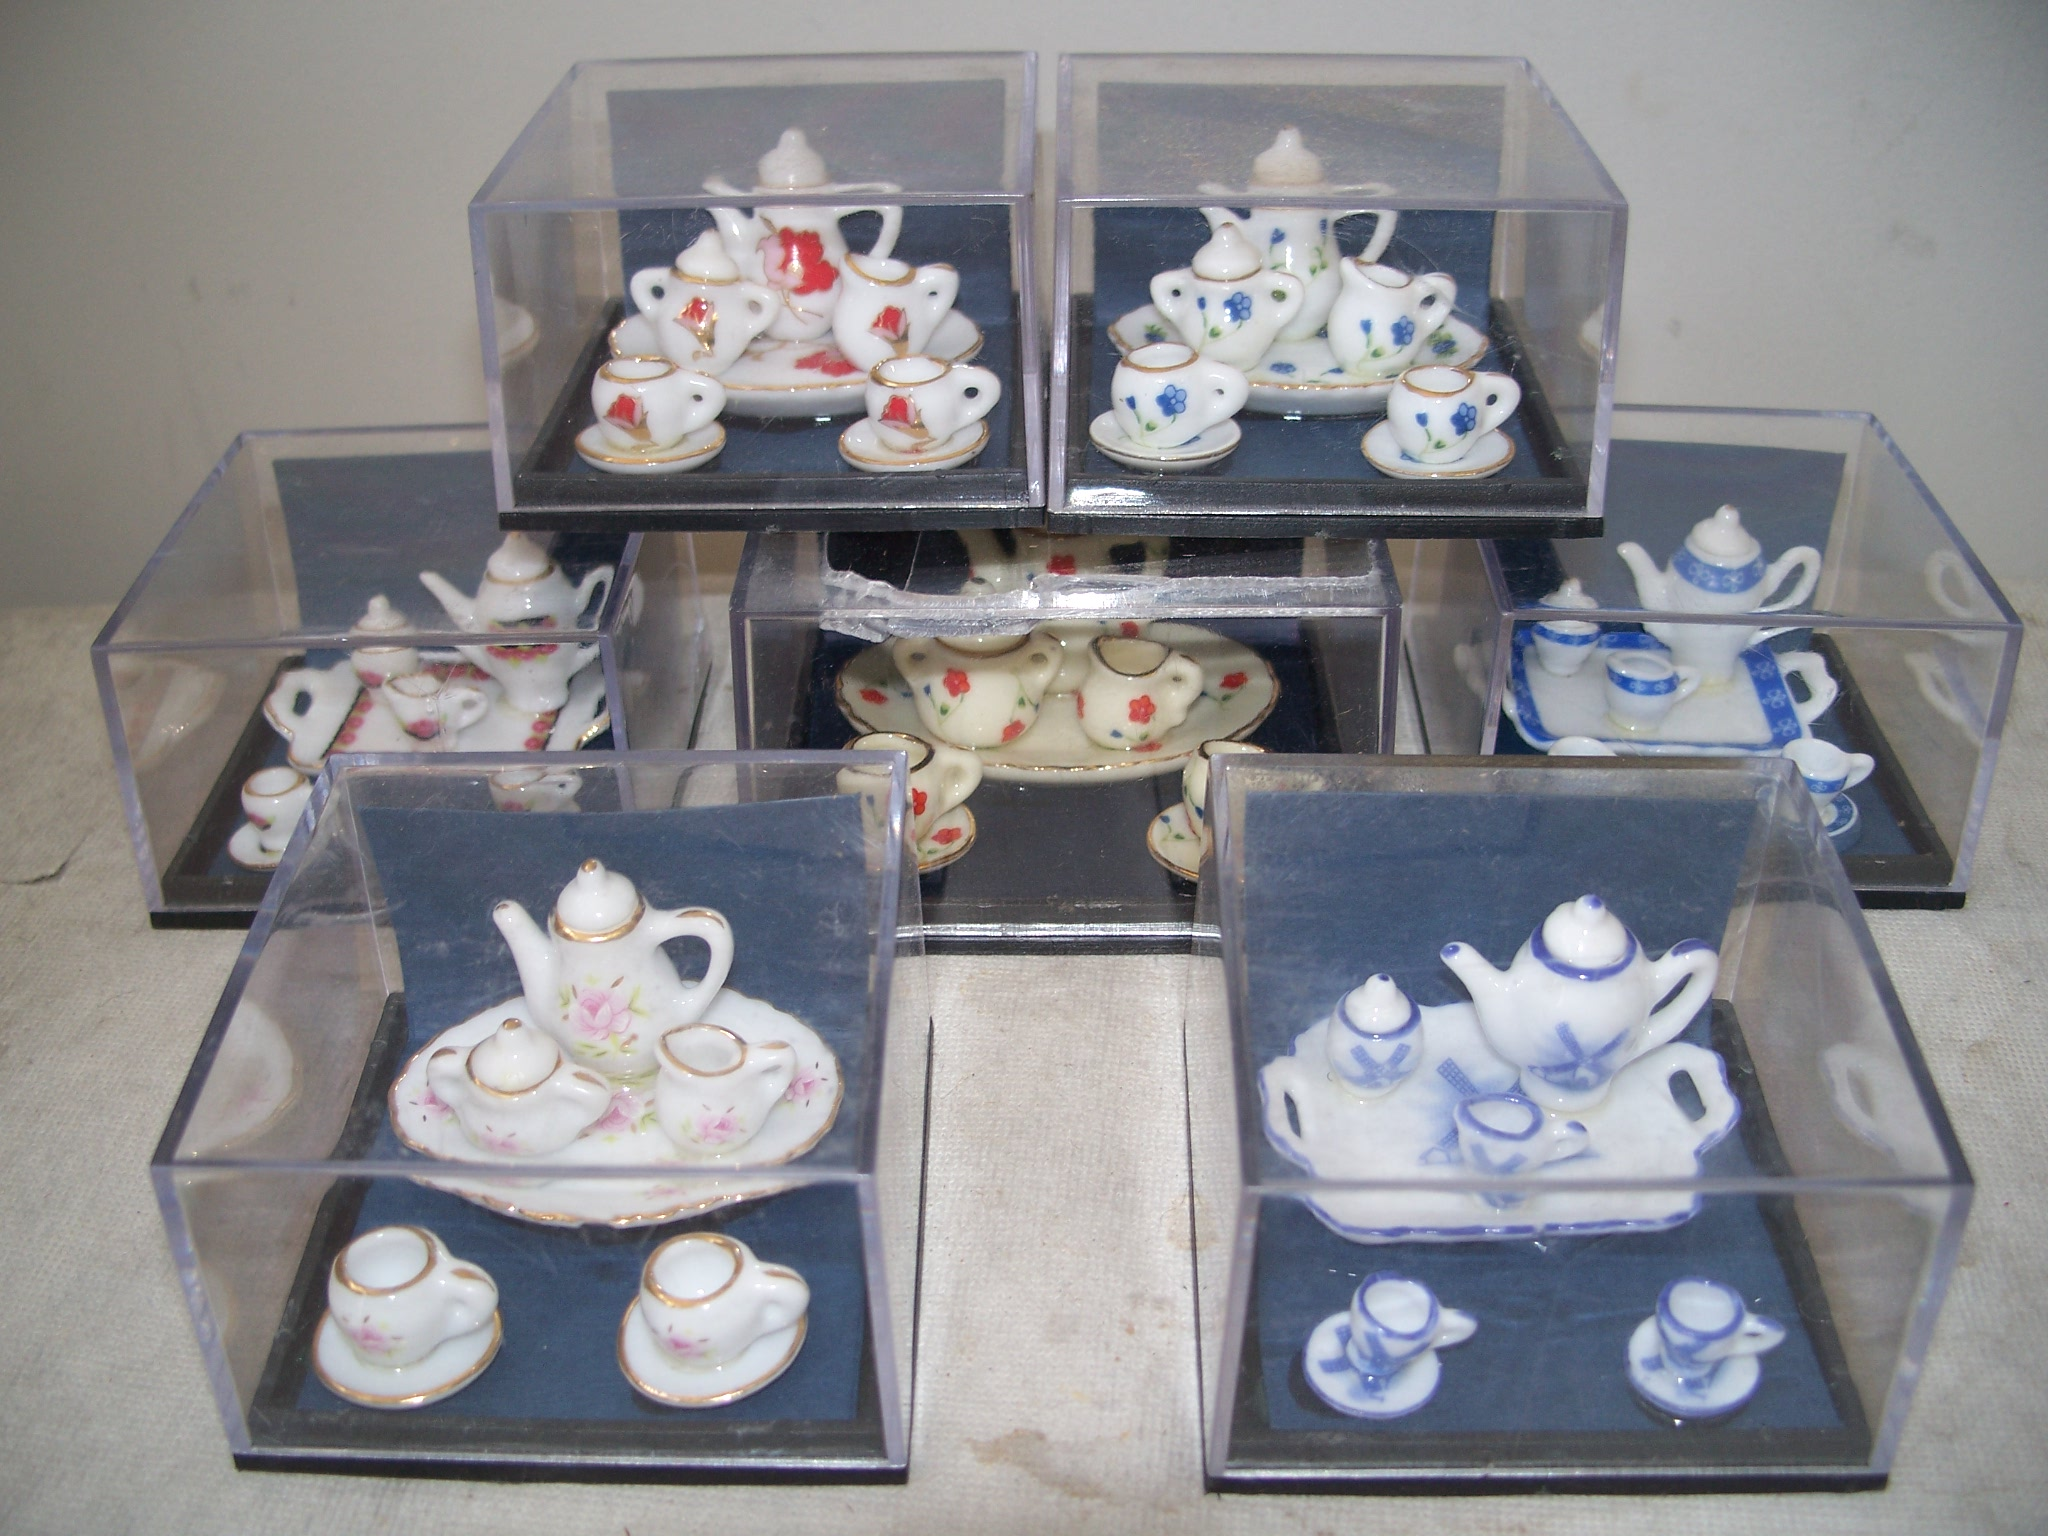 10 Piece Porcelain Tea Sets